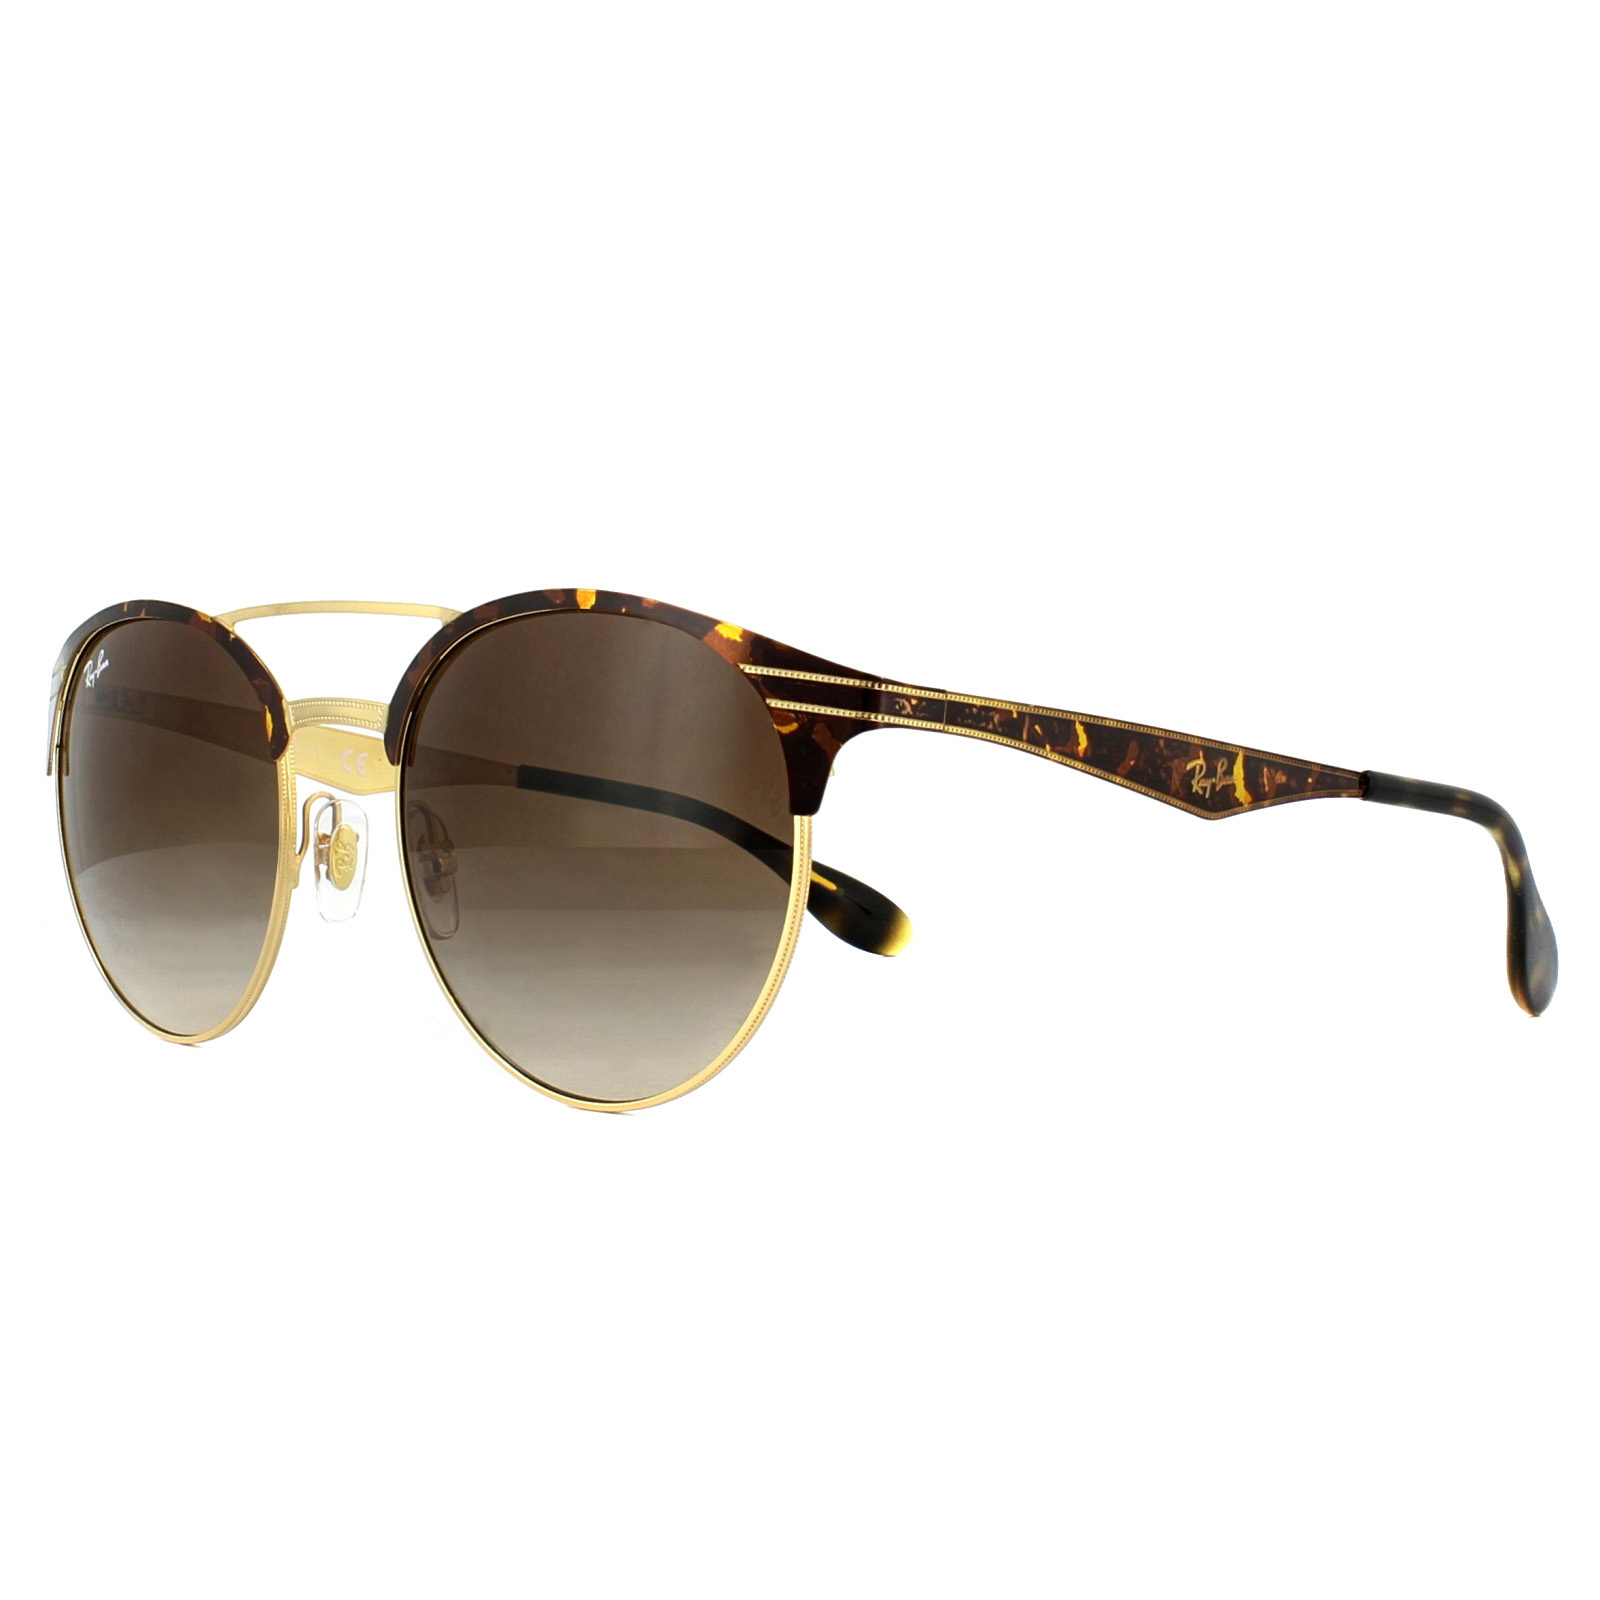 53003596287 Sentinel Ray-Ban Sunglasses 3545 900813 Tortoise Gold Brown Gradient 54mm